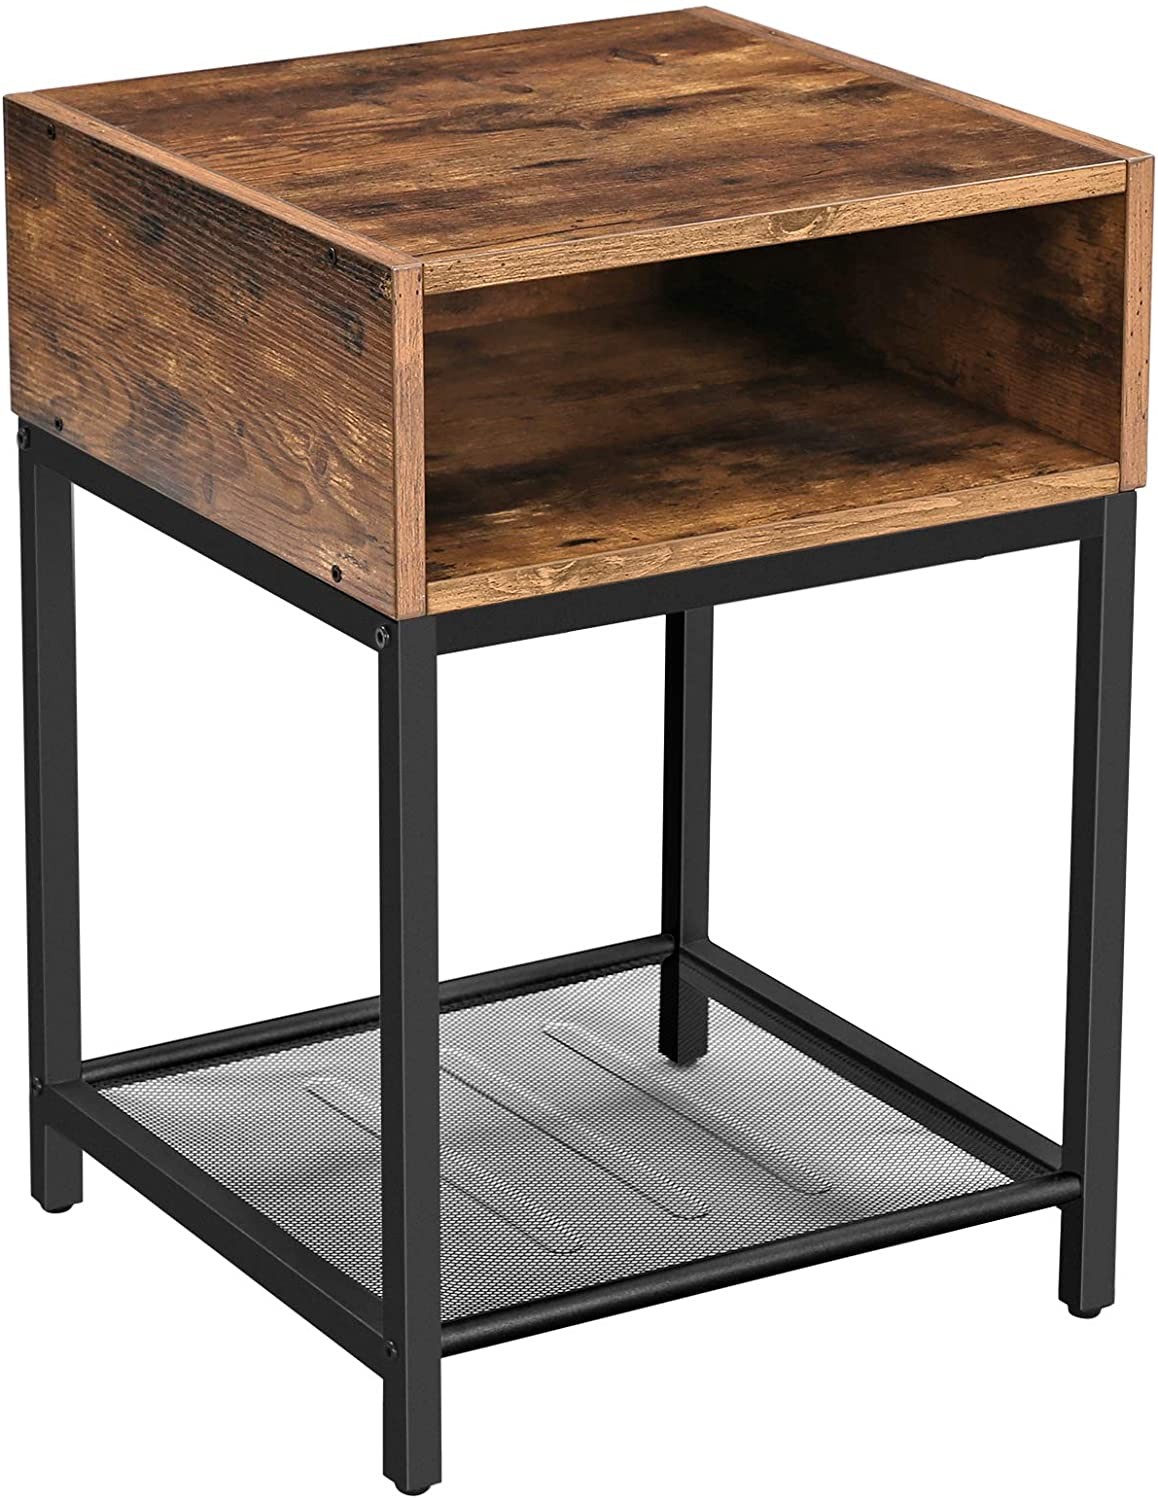 Shop hawkinswoodshop.com for solid wood & metal modern, traditional, contemporary, industrial, custom, rustic, and farmhouse furniture including our Ryan Open Drawer w/ Mesh Shelf Industrial Nightstand End Table.  Enjoy free nationwide shipping, help with the fight against hunger in the US, and support a family owned and operated business that helps puts food on the table for folks in rural Northern California.